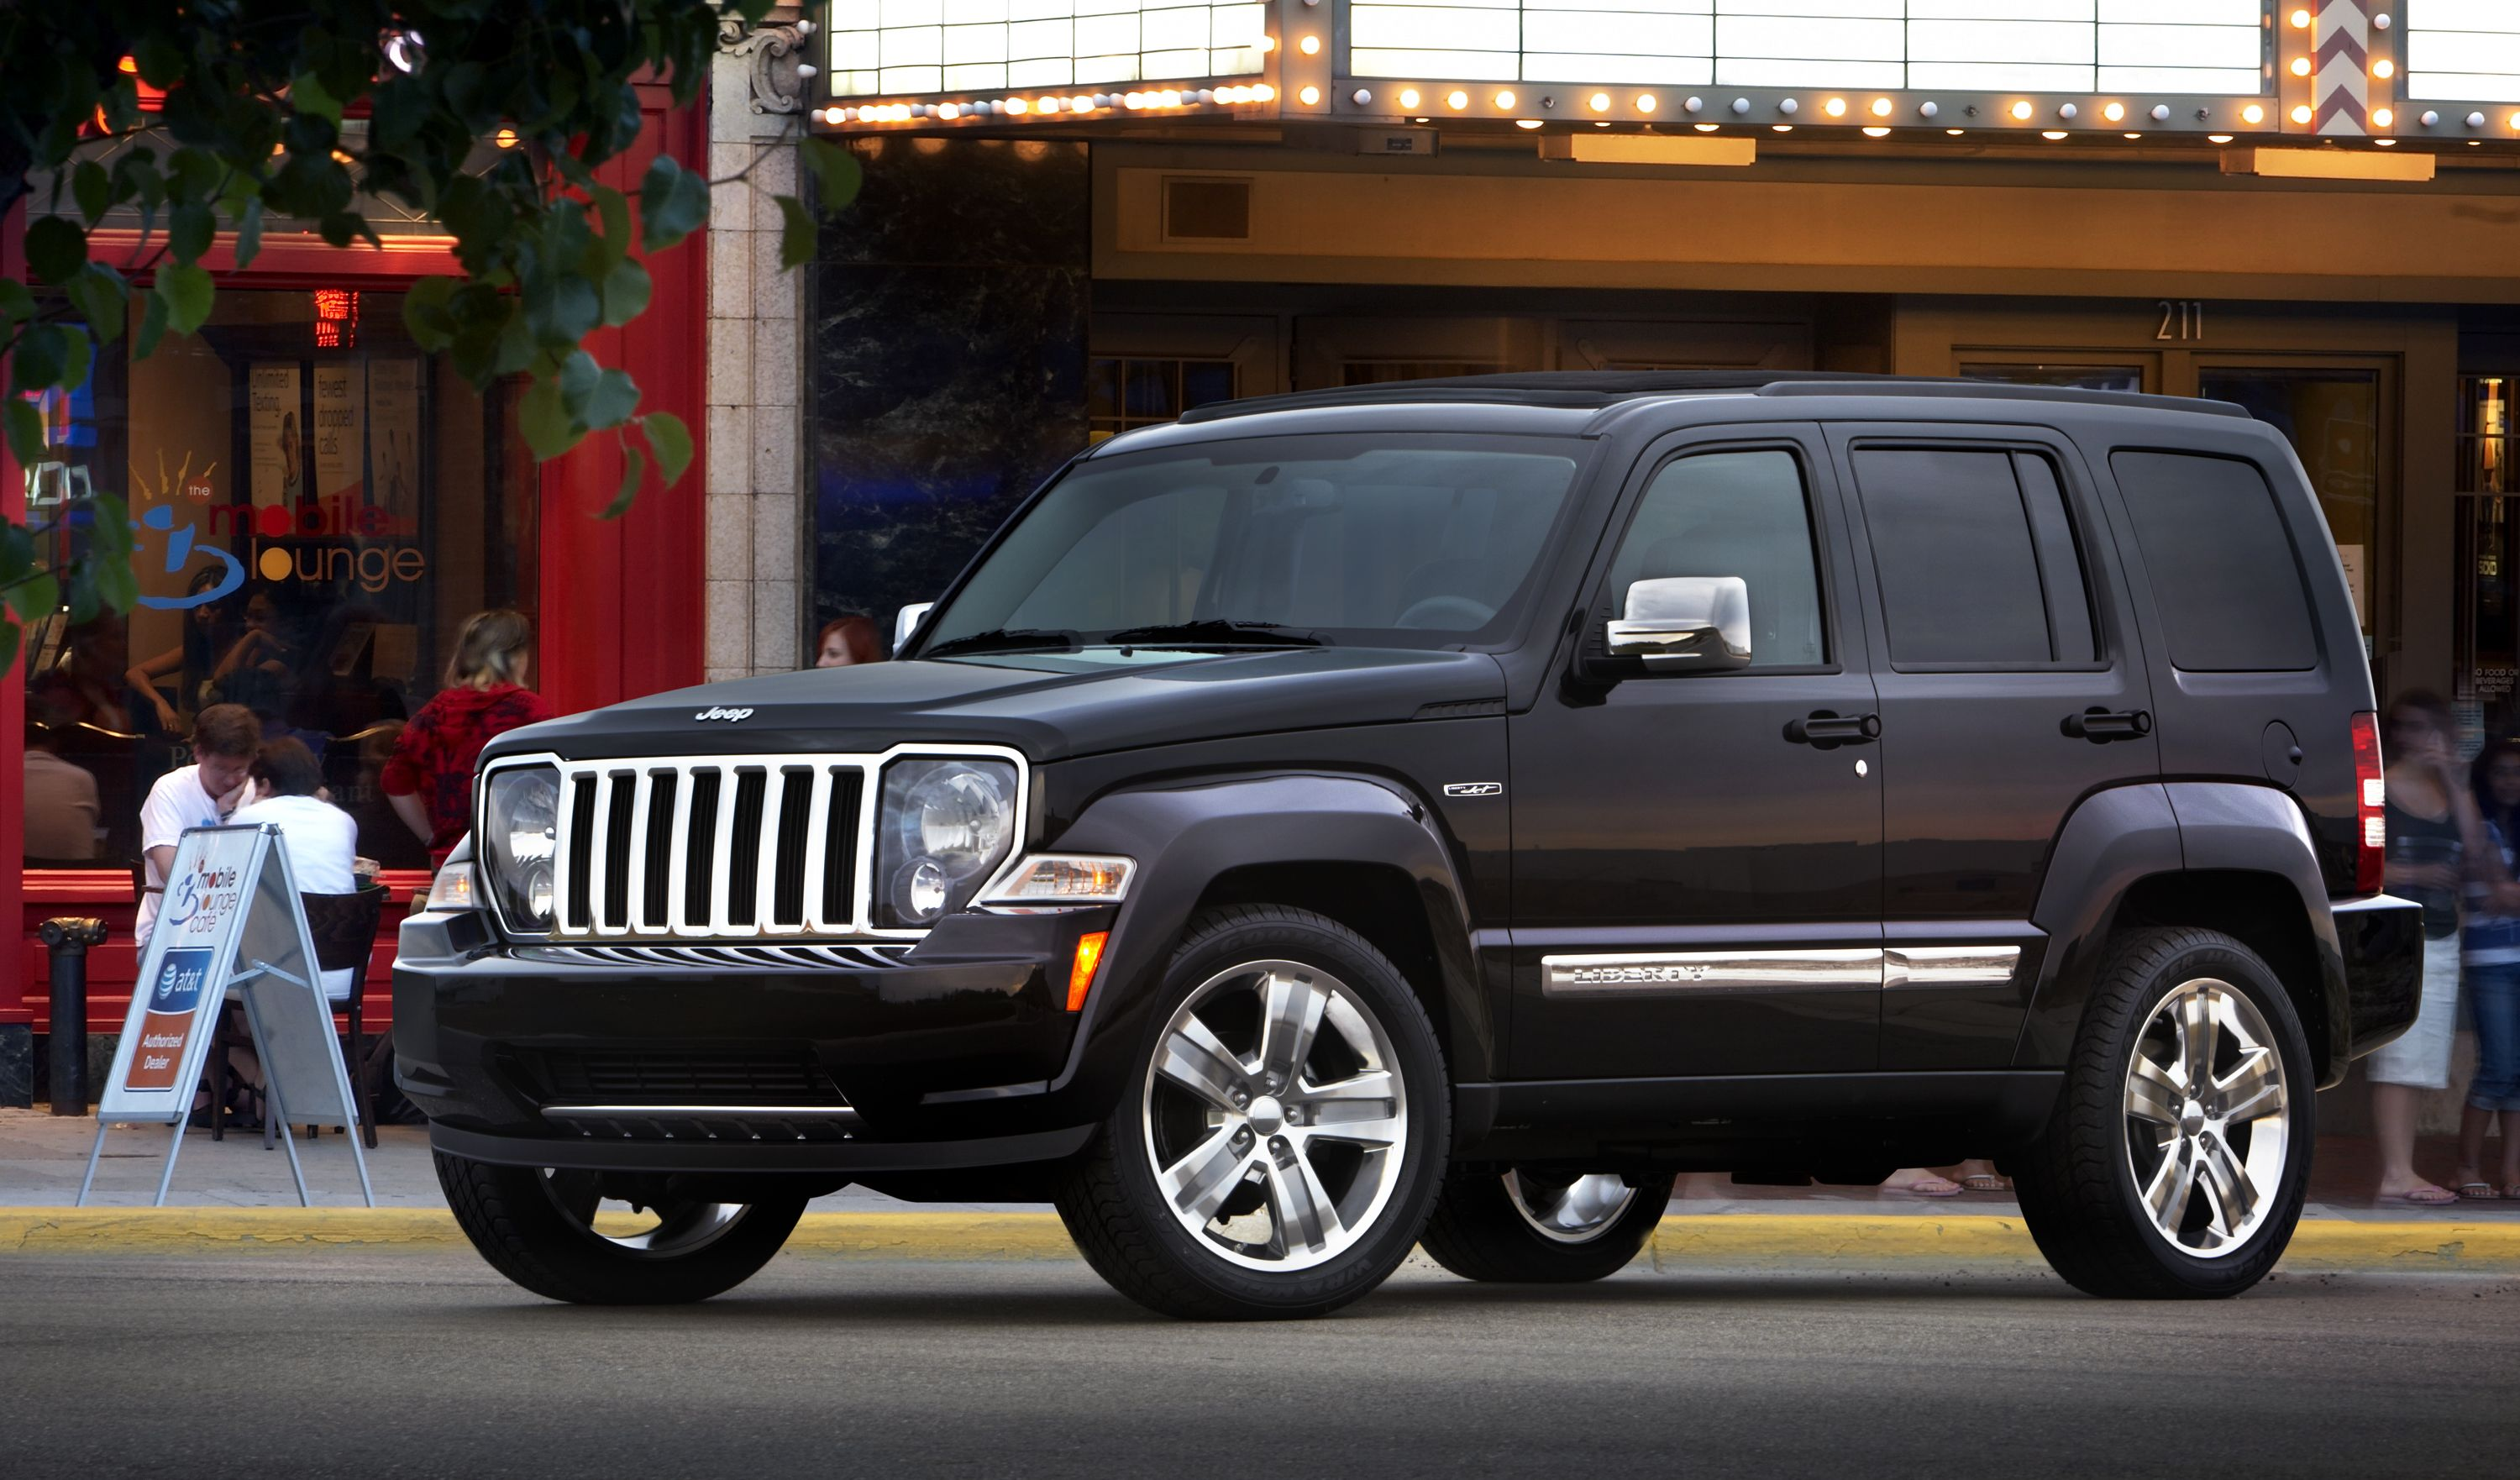 This Is My Husbands Car A Jeep Liberty The Insurance Every Moth